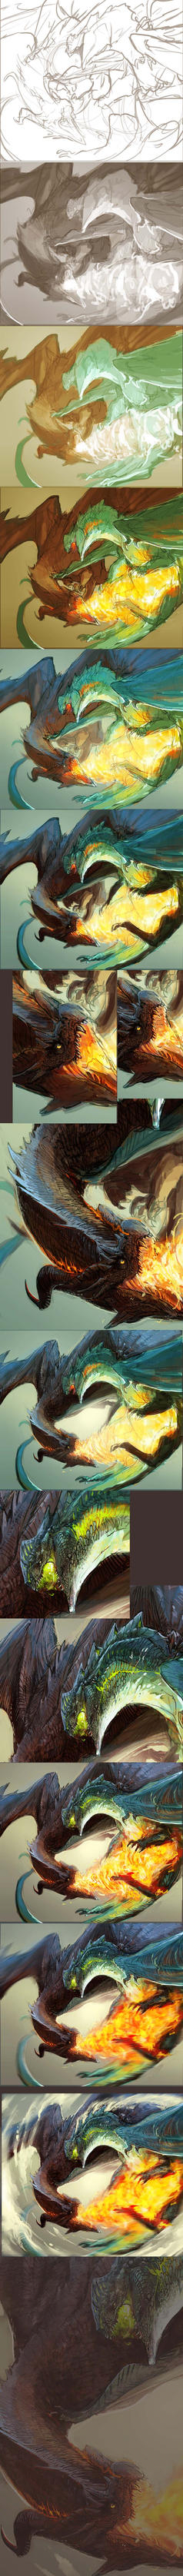 Step by step: Rivalry by Black-Wing24